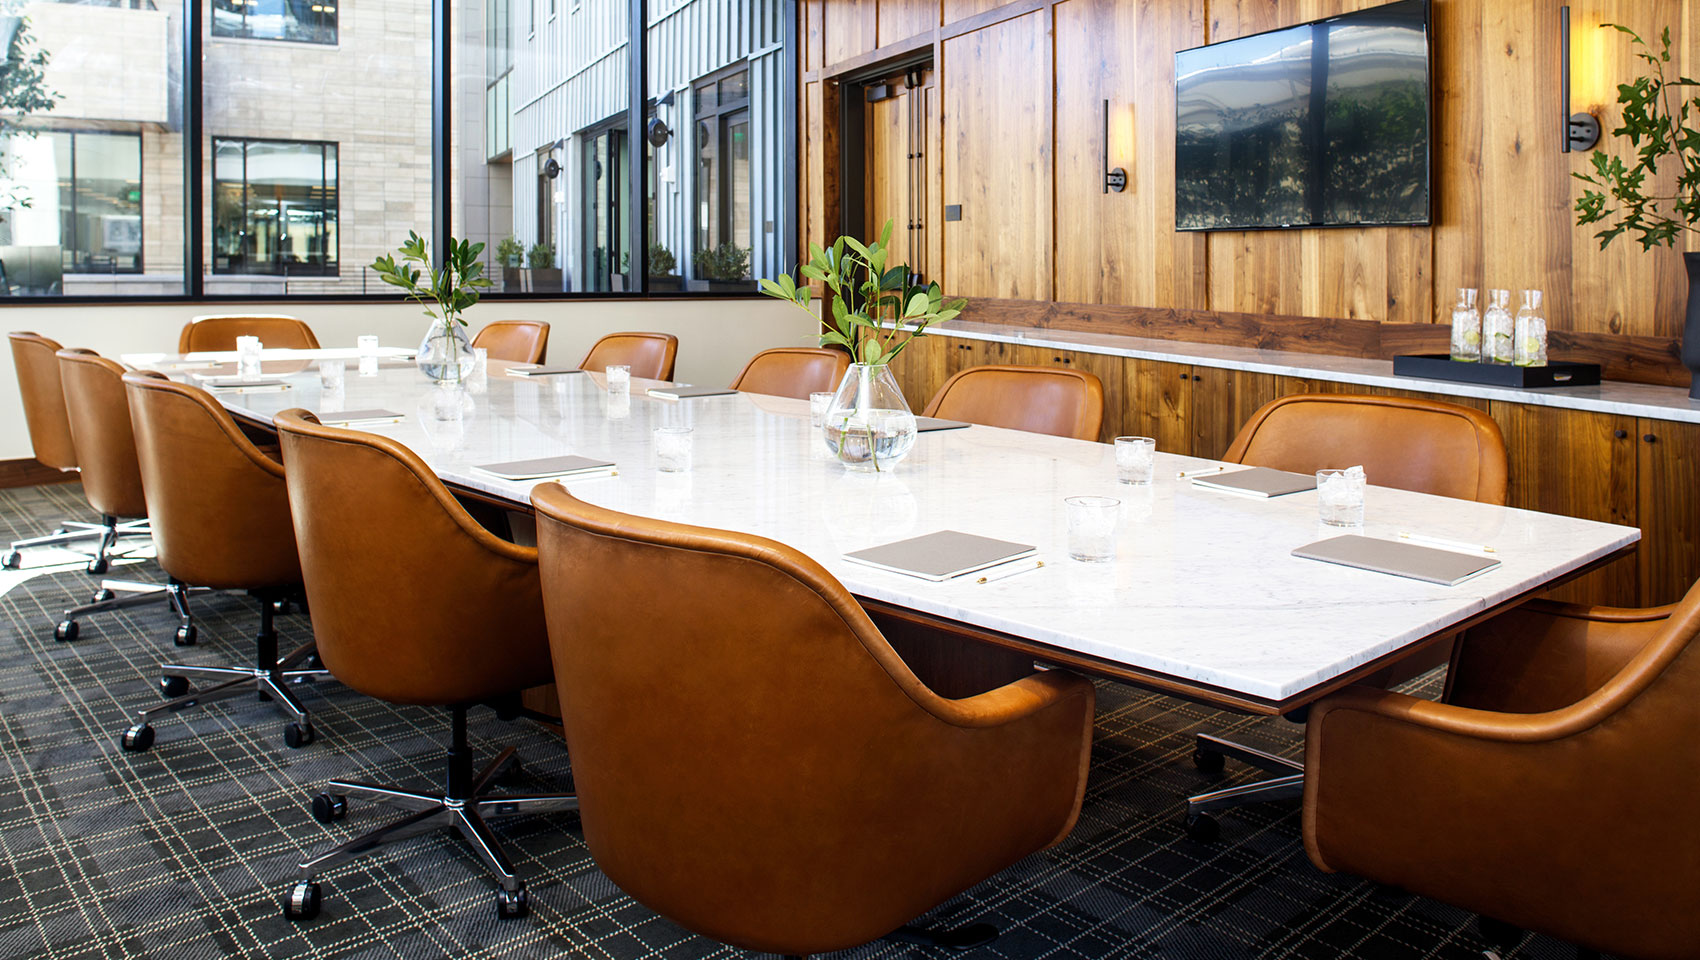 nordic boardroom meeting space denver born hotel